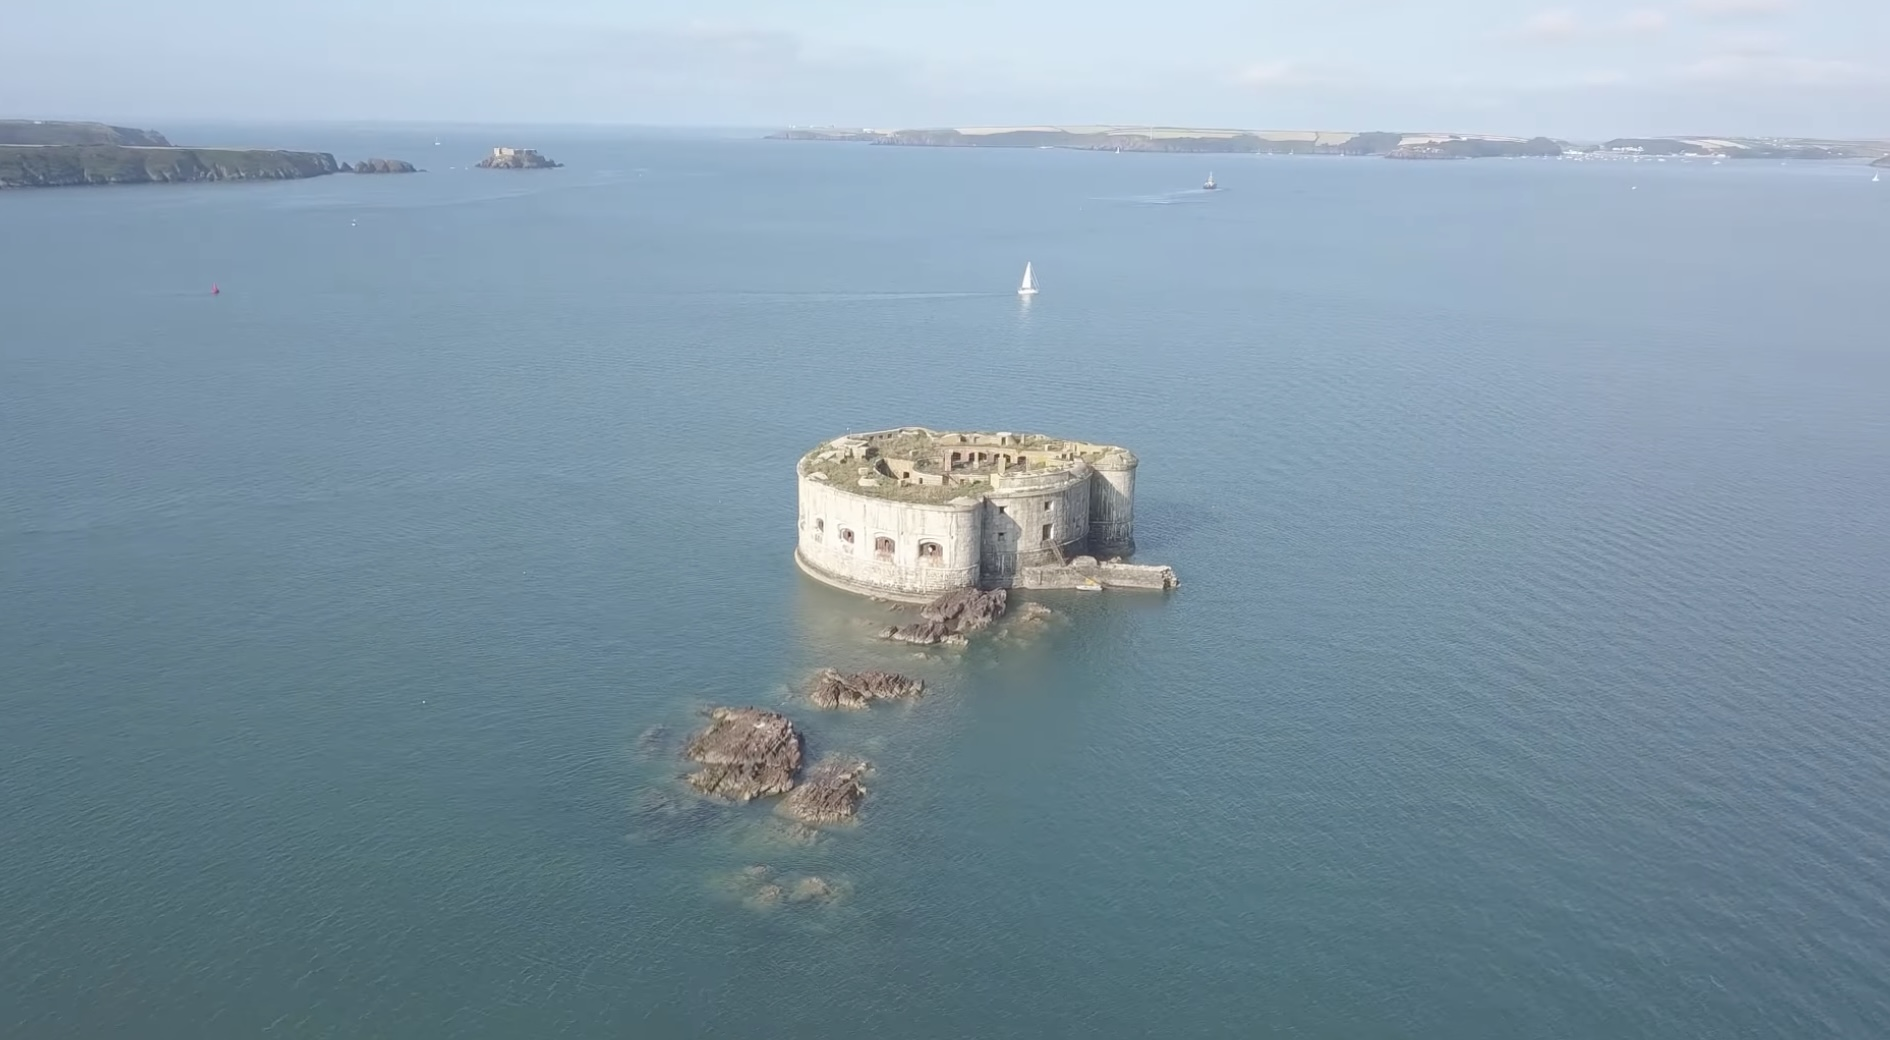 Exploring Stack Rock Fort, an abandoned three-gun fort built in an estuary in Wales